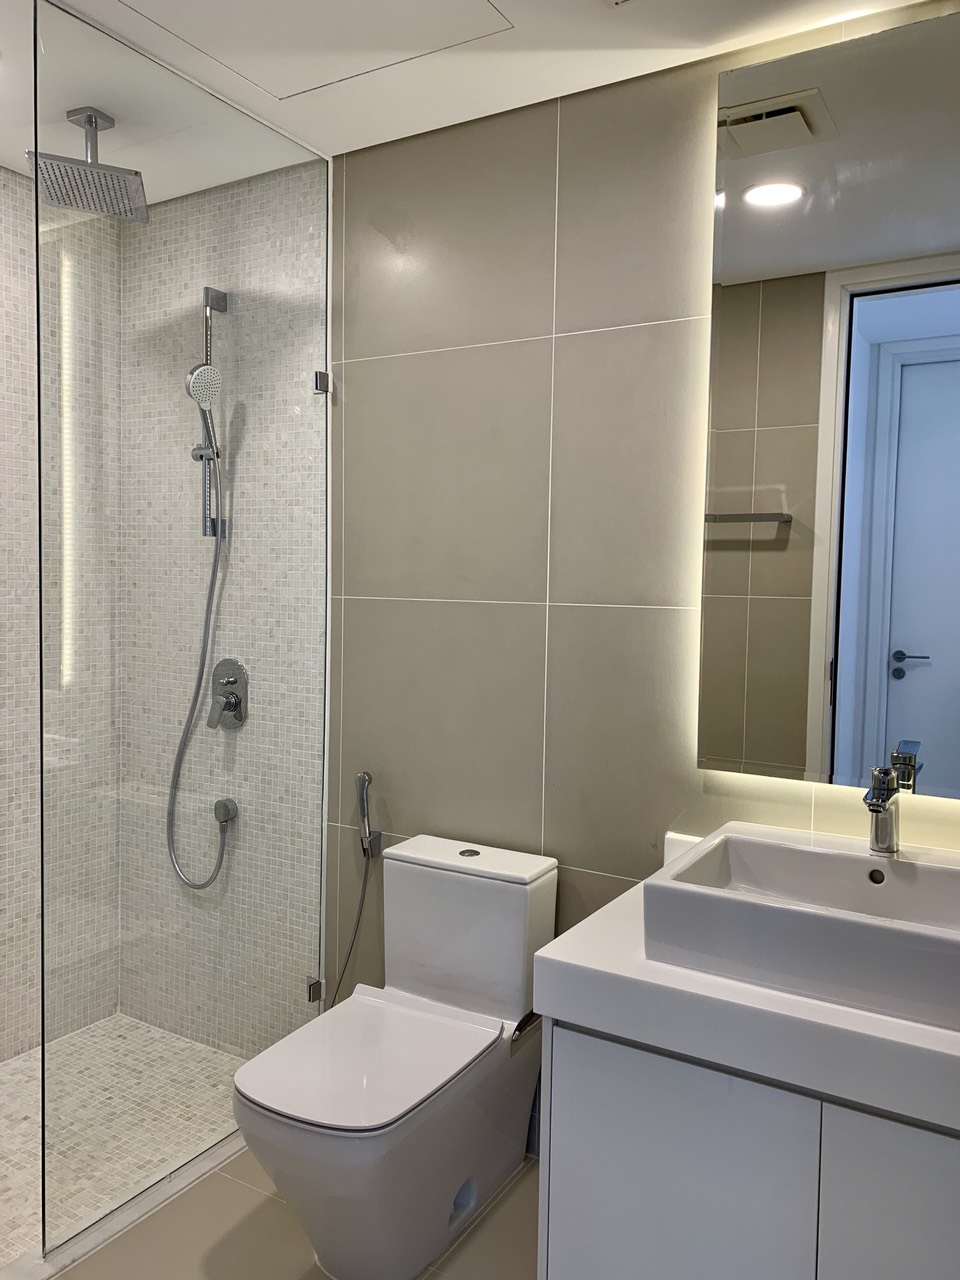 gateway thao dien apartment for rent in district 2 hcmc D222319(15)